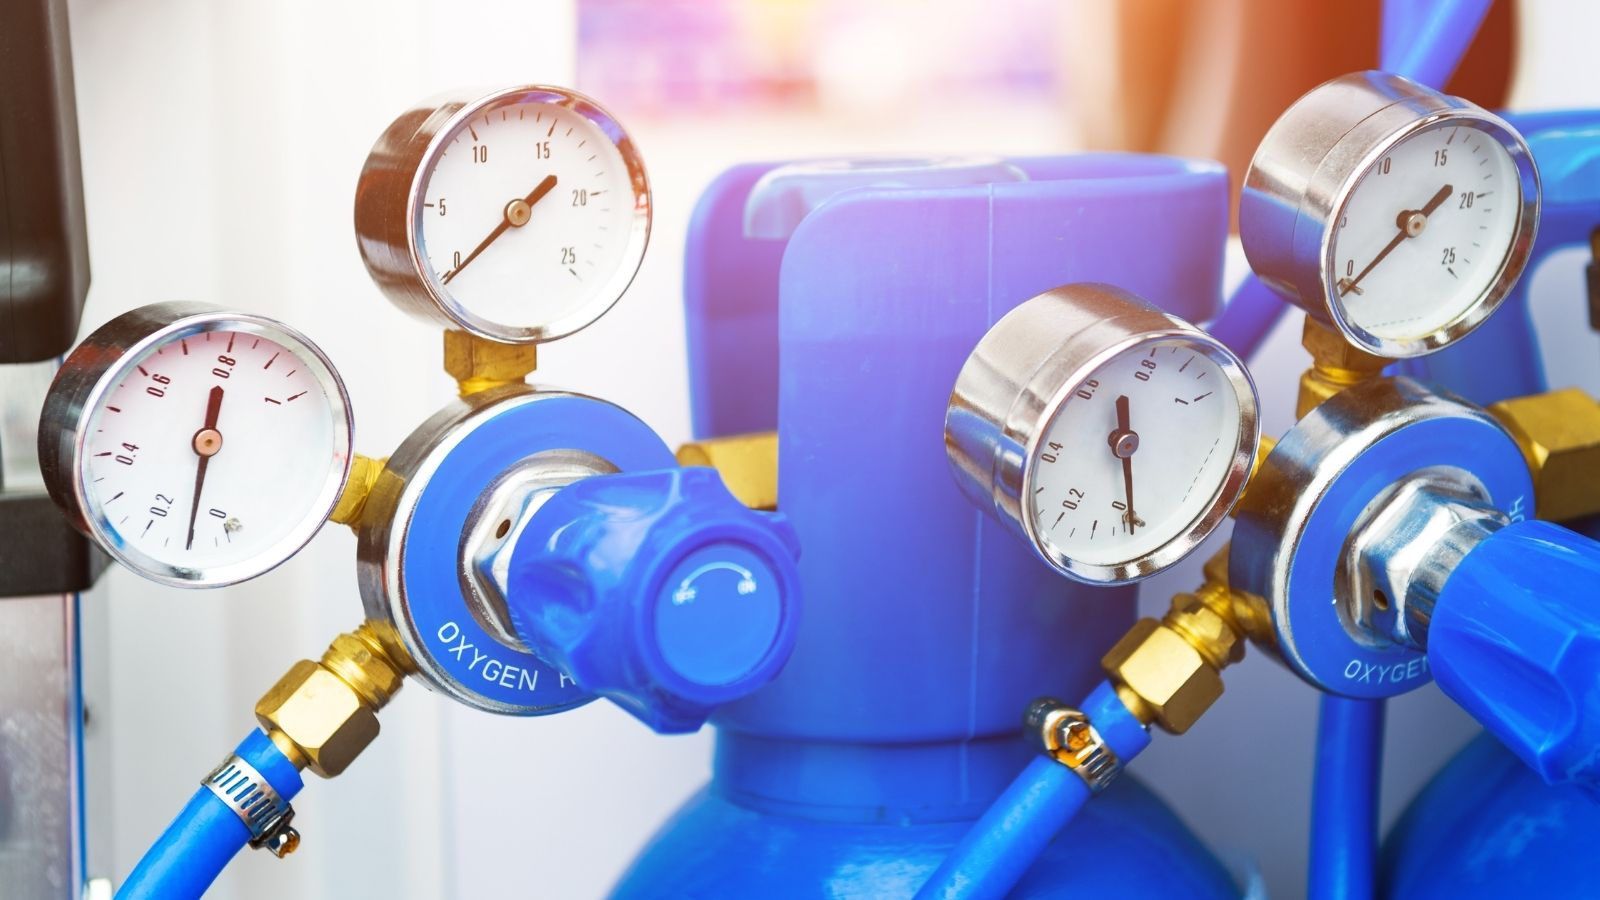 Compressed gases in pharmaceutical manufacturing: best practices in microbial monitoring